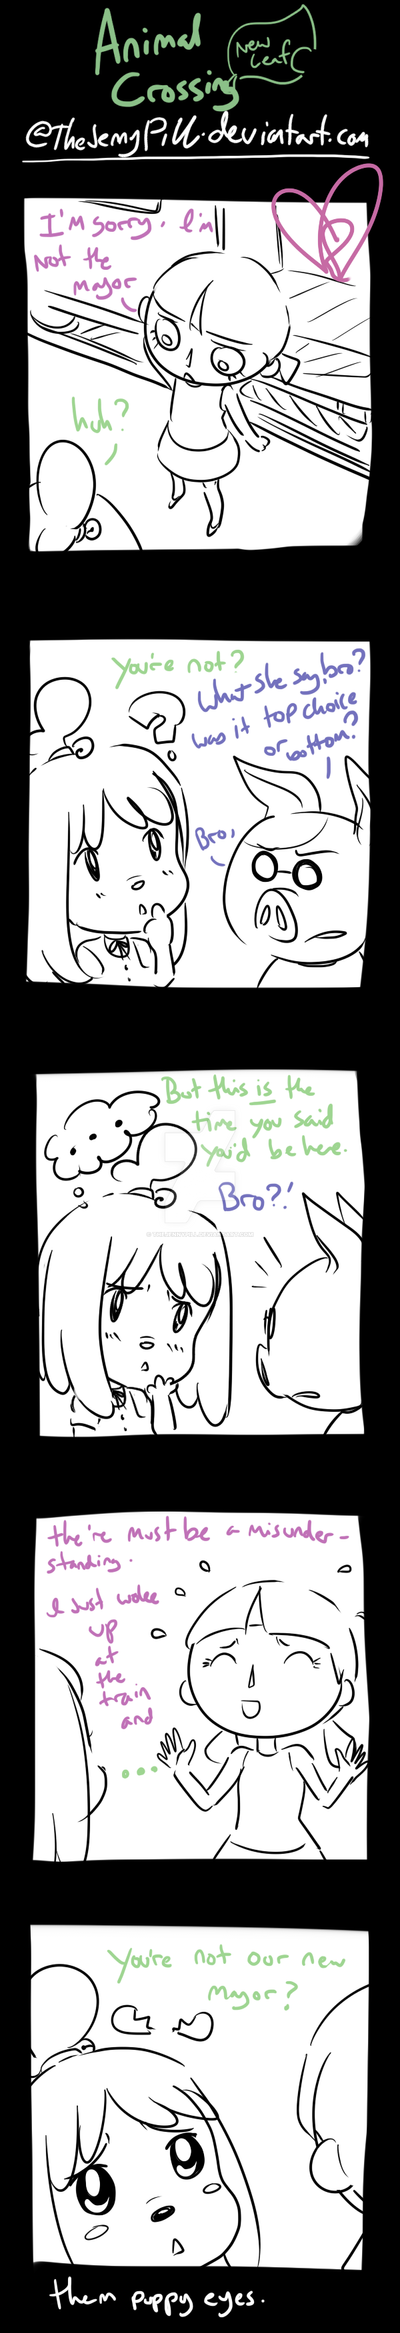 Animal Crossing New Leaf - comic 3 by TheJennyPill